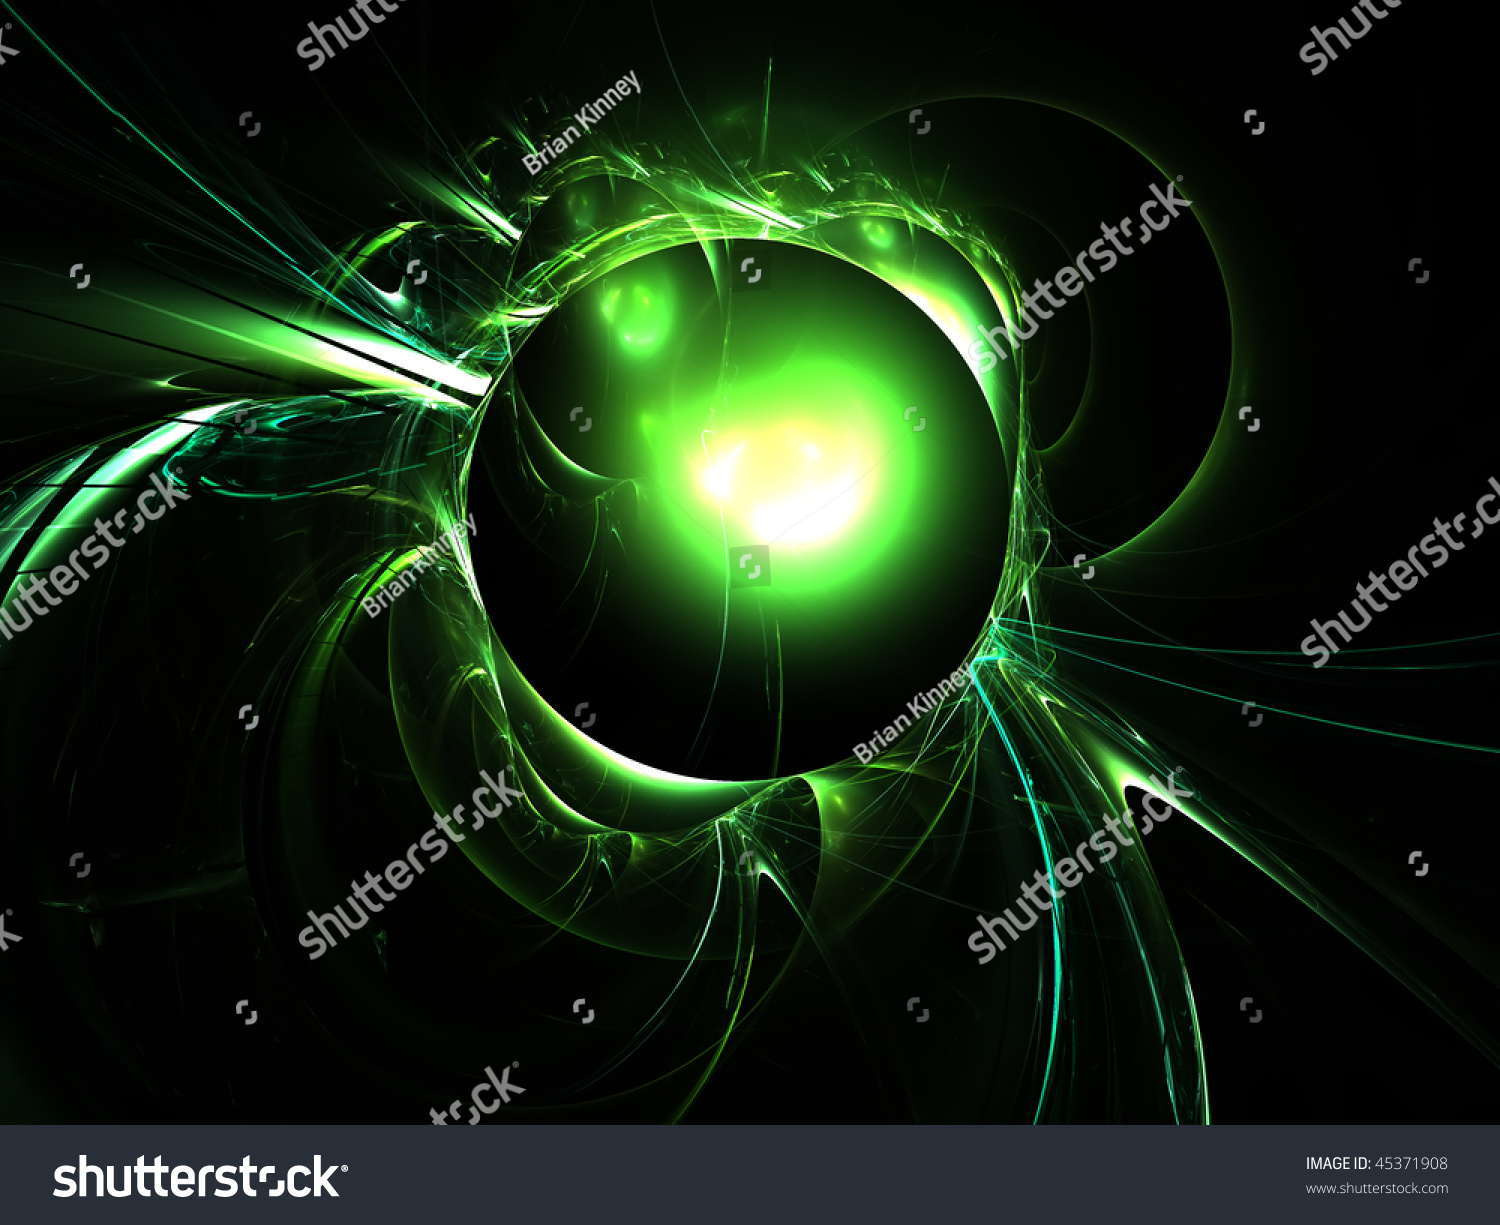 abstract art background green planet star stock illustration